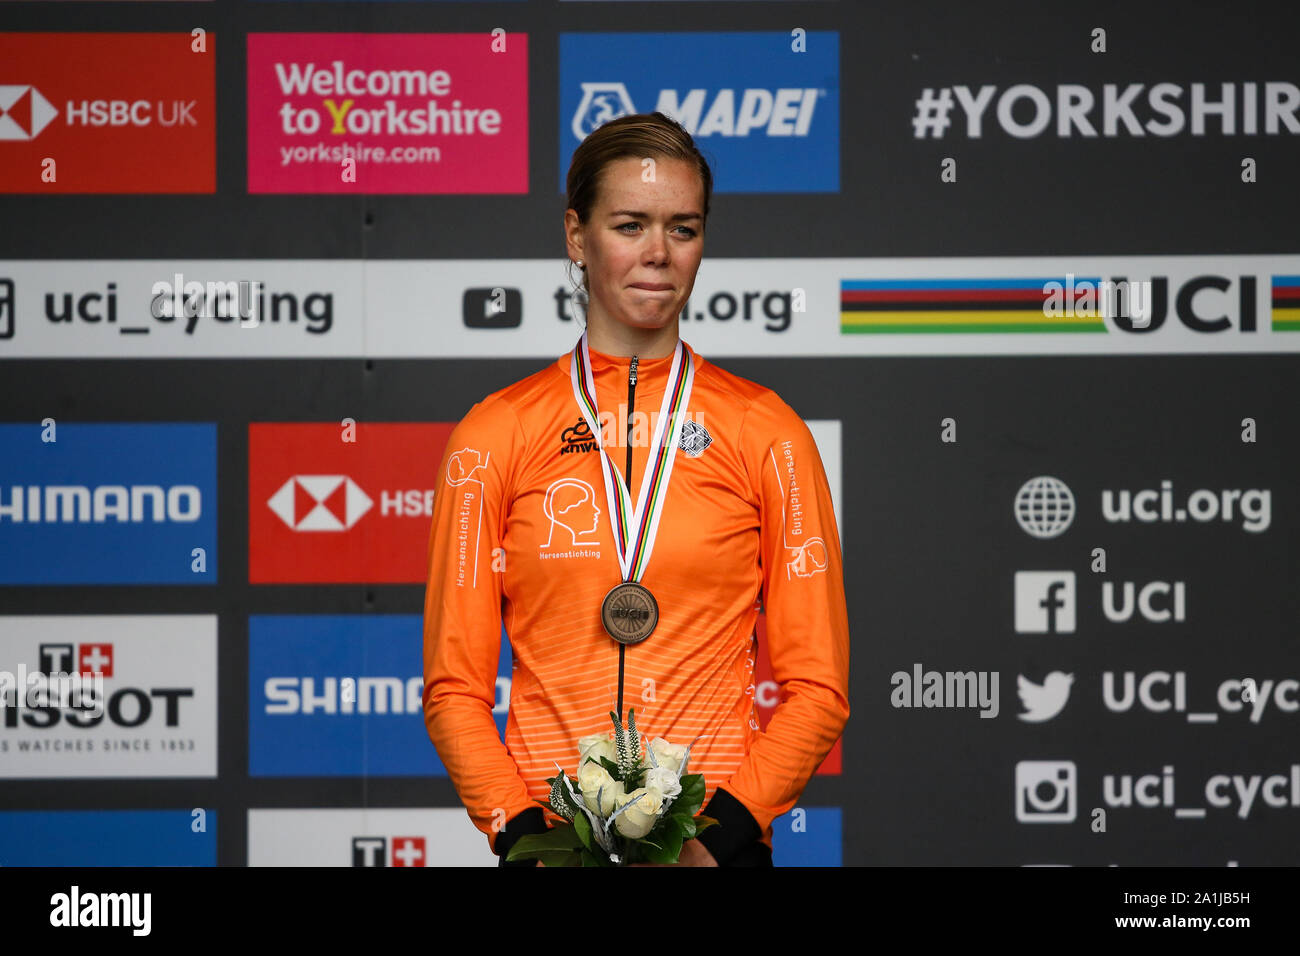 Harrogate, UK. 27th September 2019. Lieke Nooijen of the Netherlands takes Bronze in the 2019 UCI Road World Championships Womens Junior Road Race. September 27, 2019 Credit Dan-Cooke/Alamy Live News Stock Photo